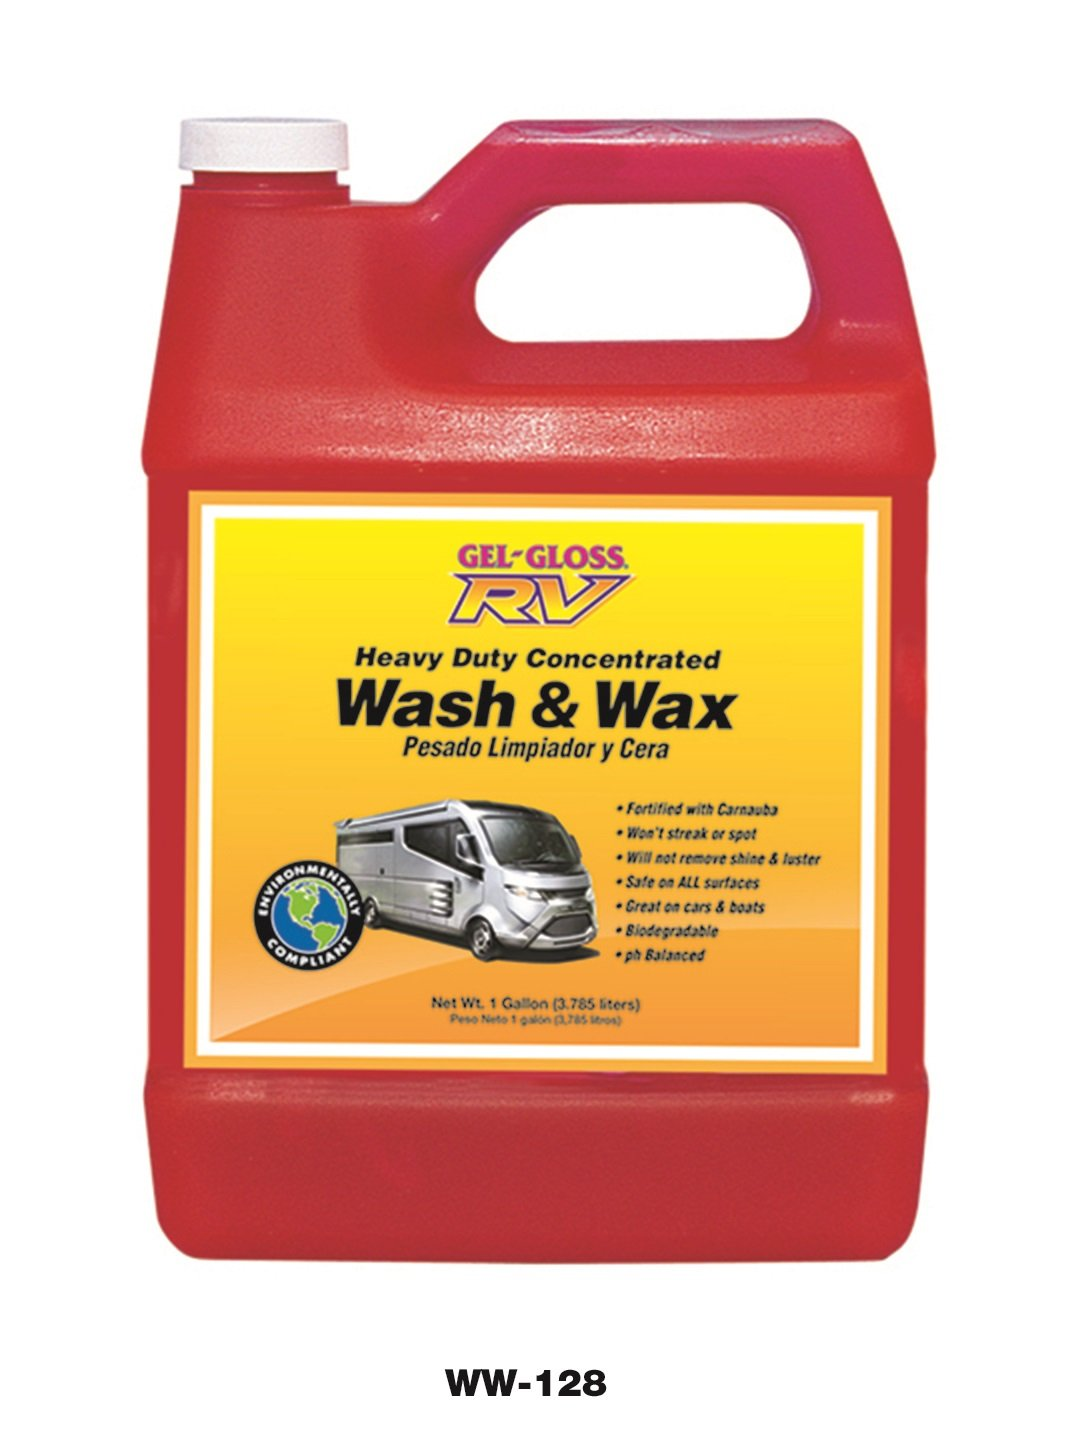 Gel-Gloss RV Wash and Wax